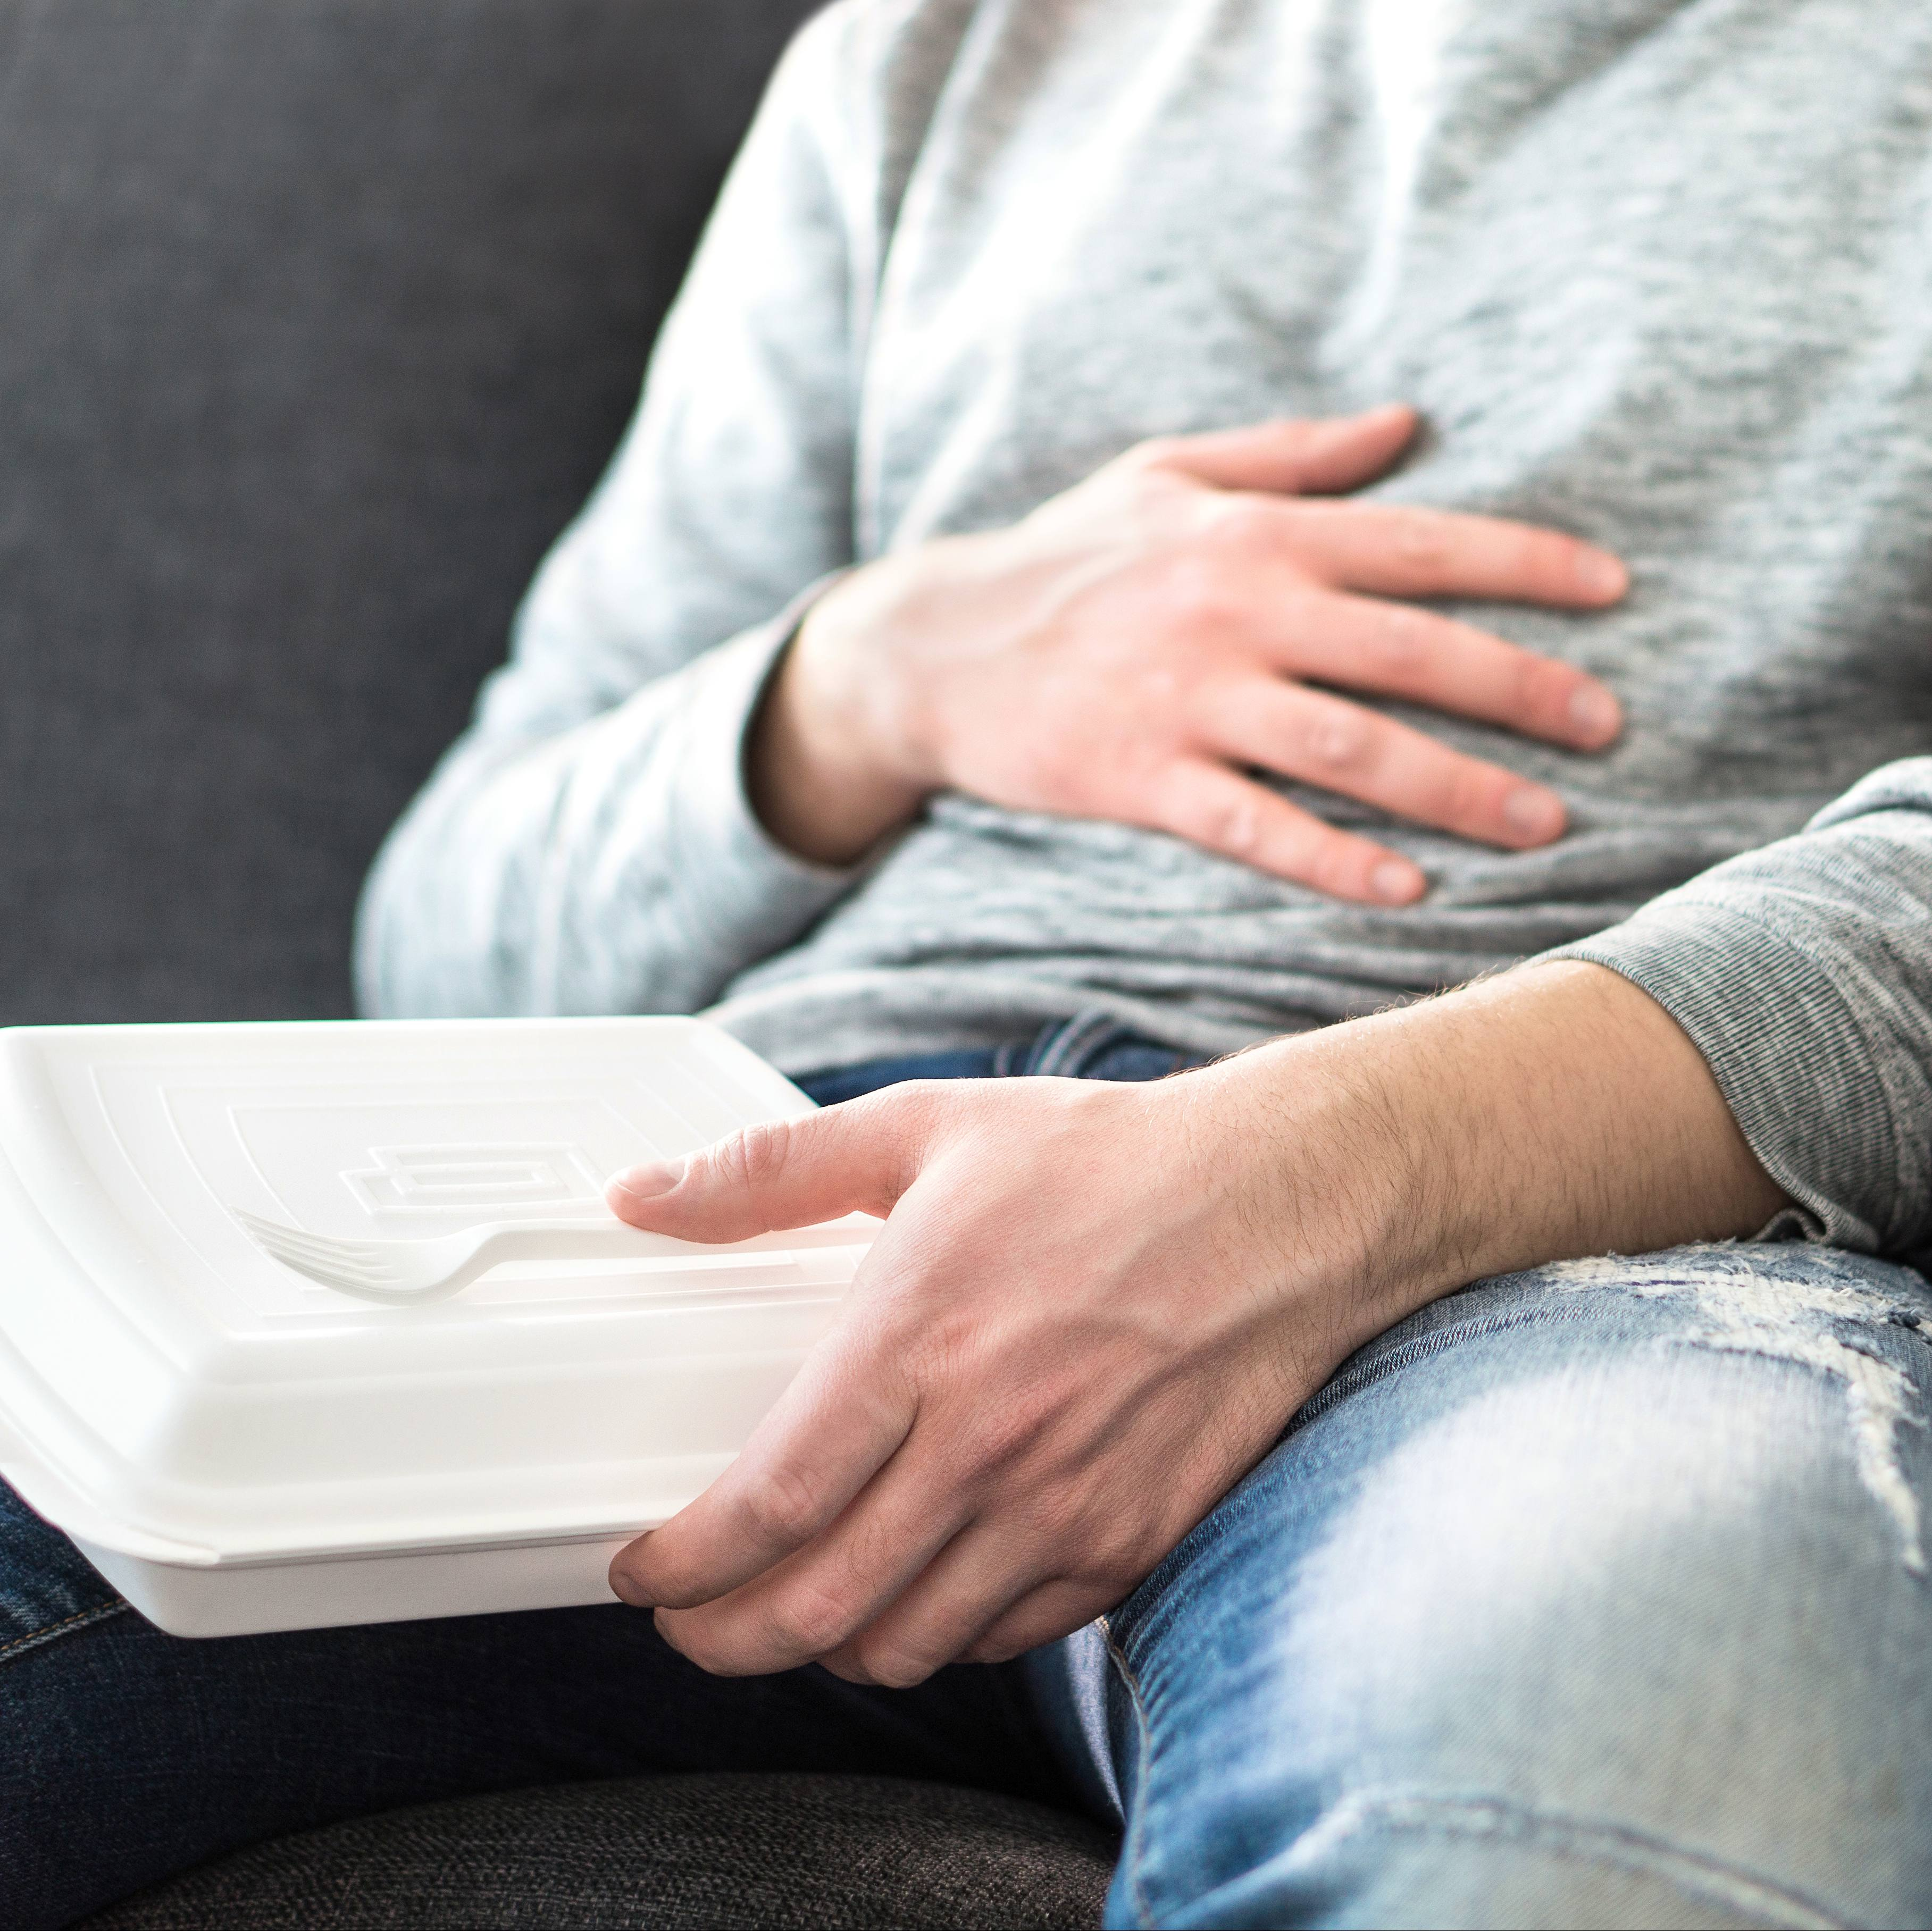 a white man in jeans, sitting on a couch and holding a take out food box, holding his stomach like he's sick or ill with a stomach ache, maybe gastroenterology and indigestion problems with gas